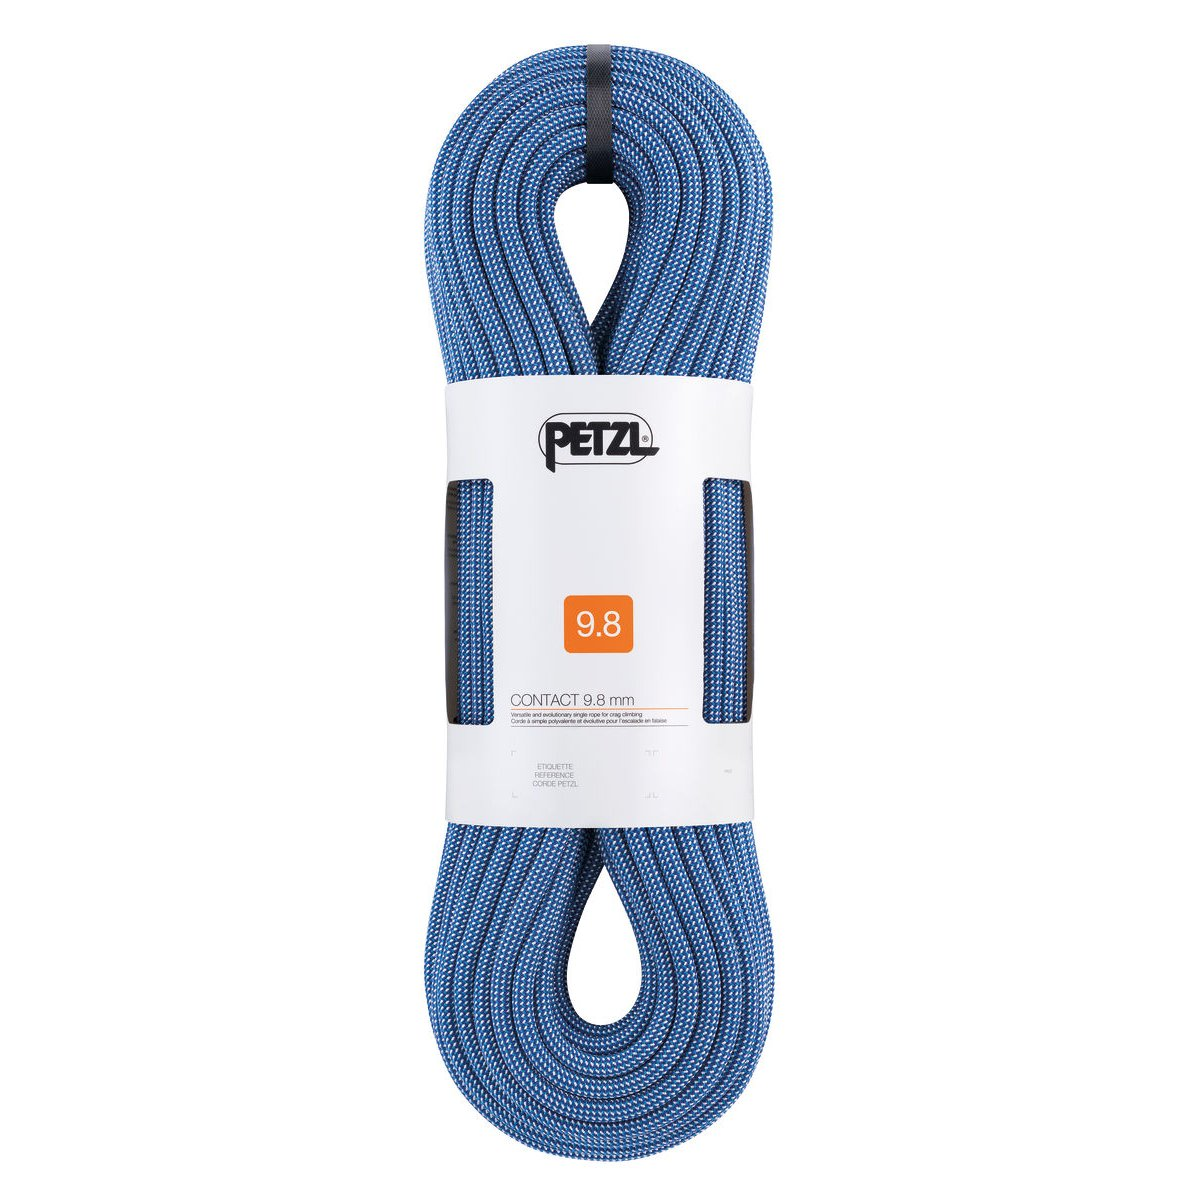 CONTACT 9.8 MM ROPE 60M BLUE